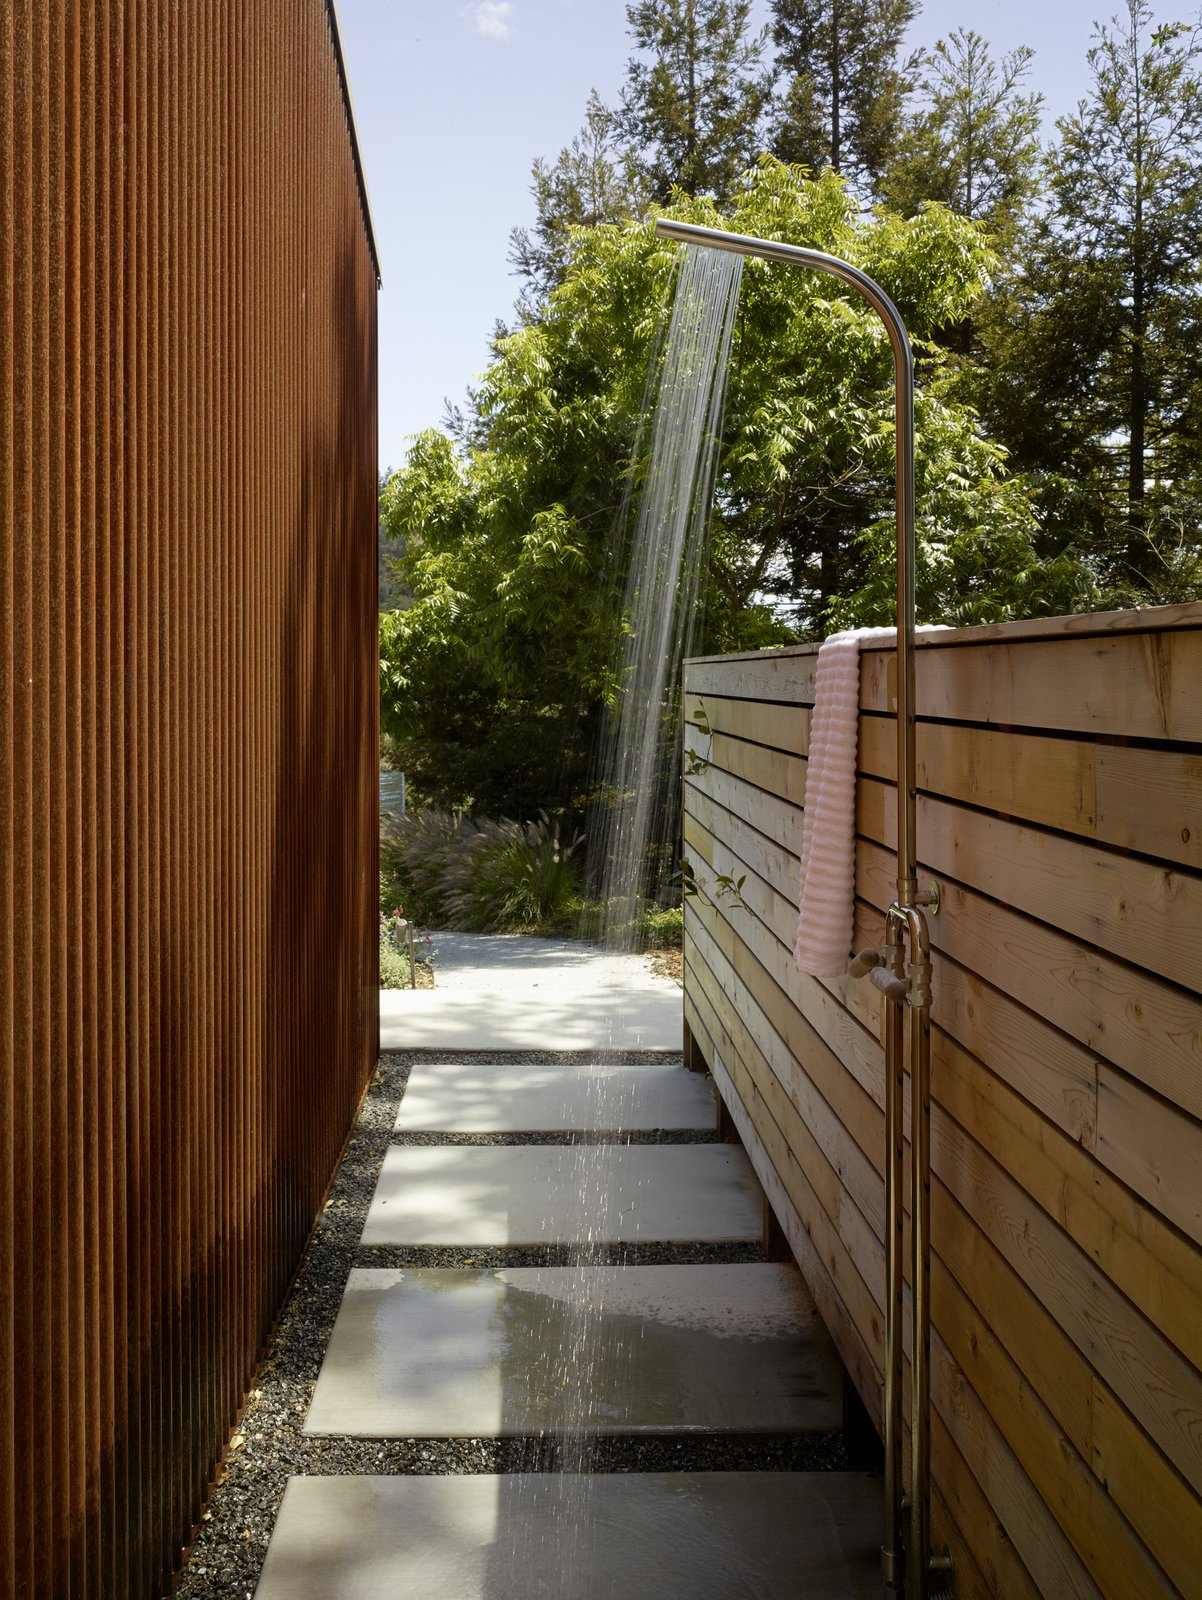 #TurnbullGriffinHaesloop #exterior #outdoorshower